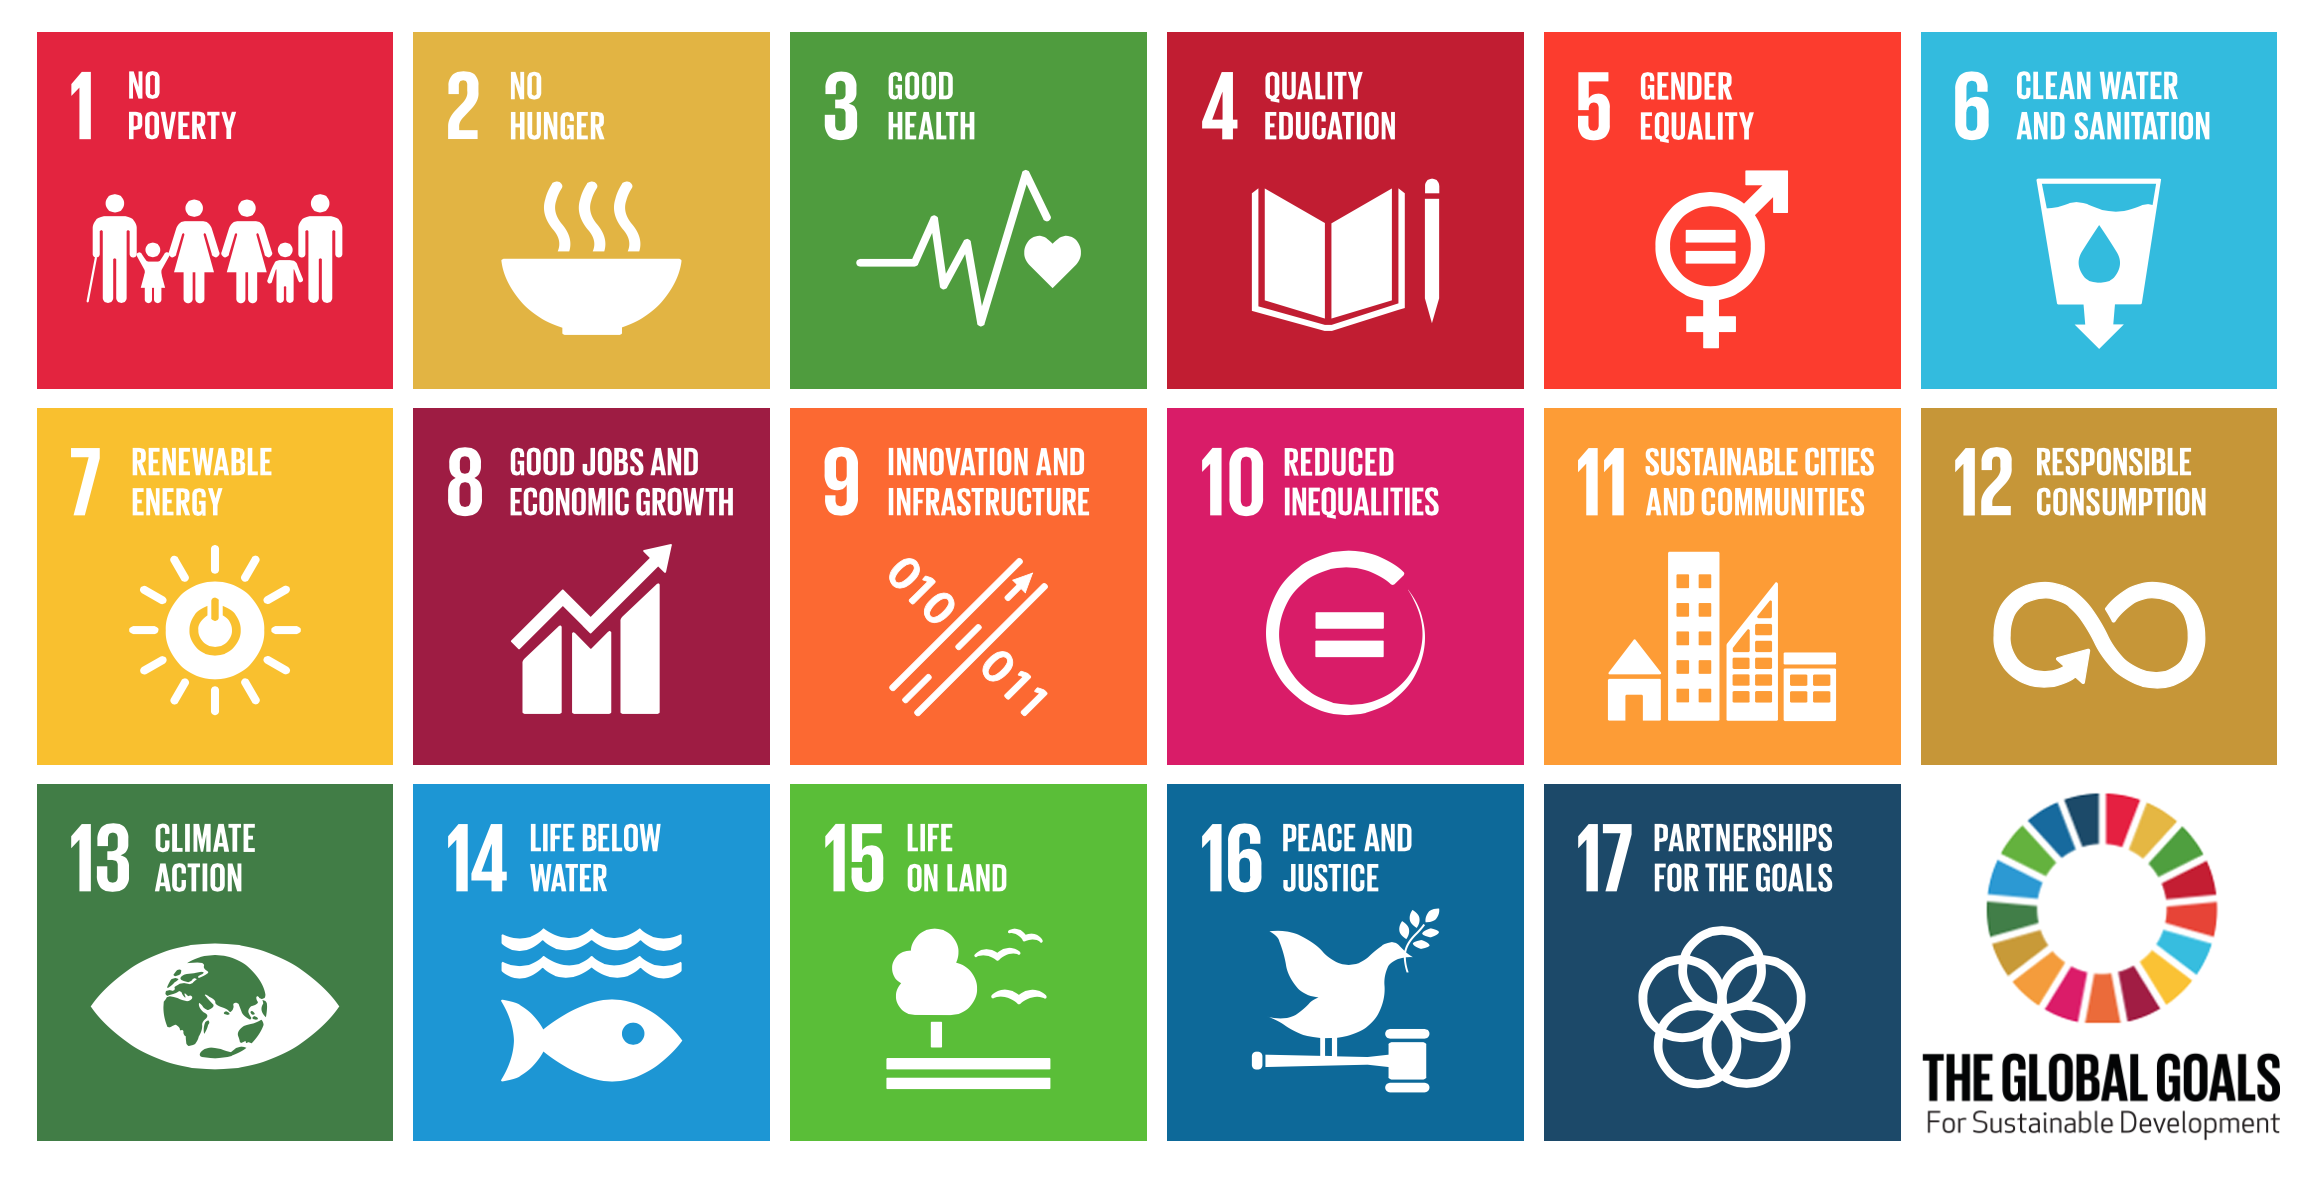 Chart_of_UN_Sustainable_Development_Goals.png